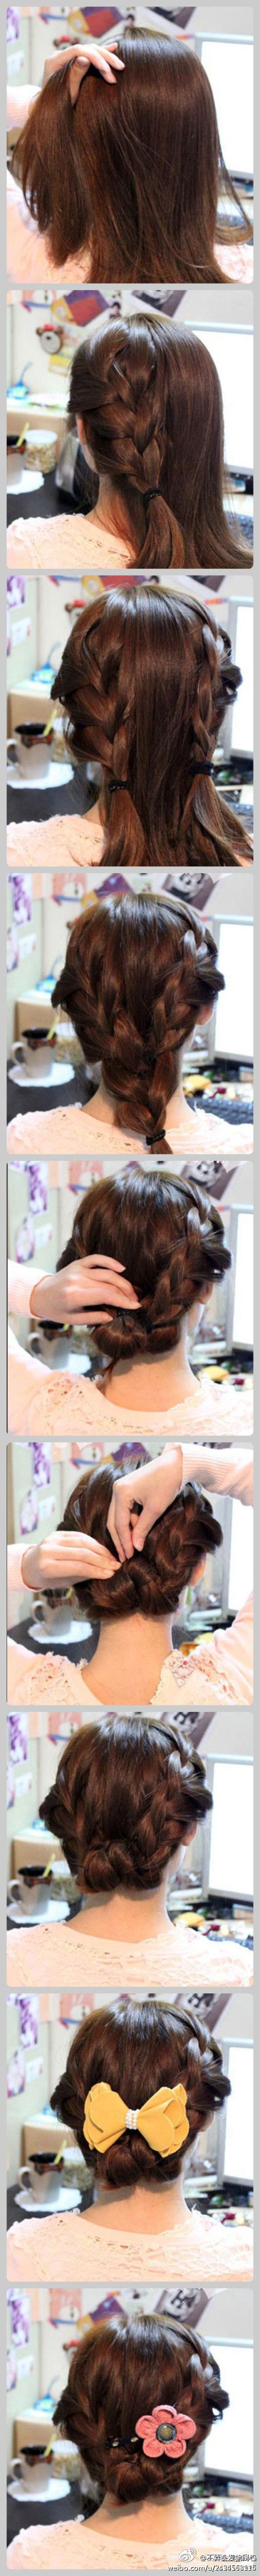 Easy braided hair